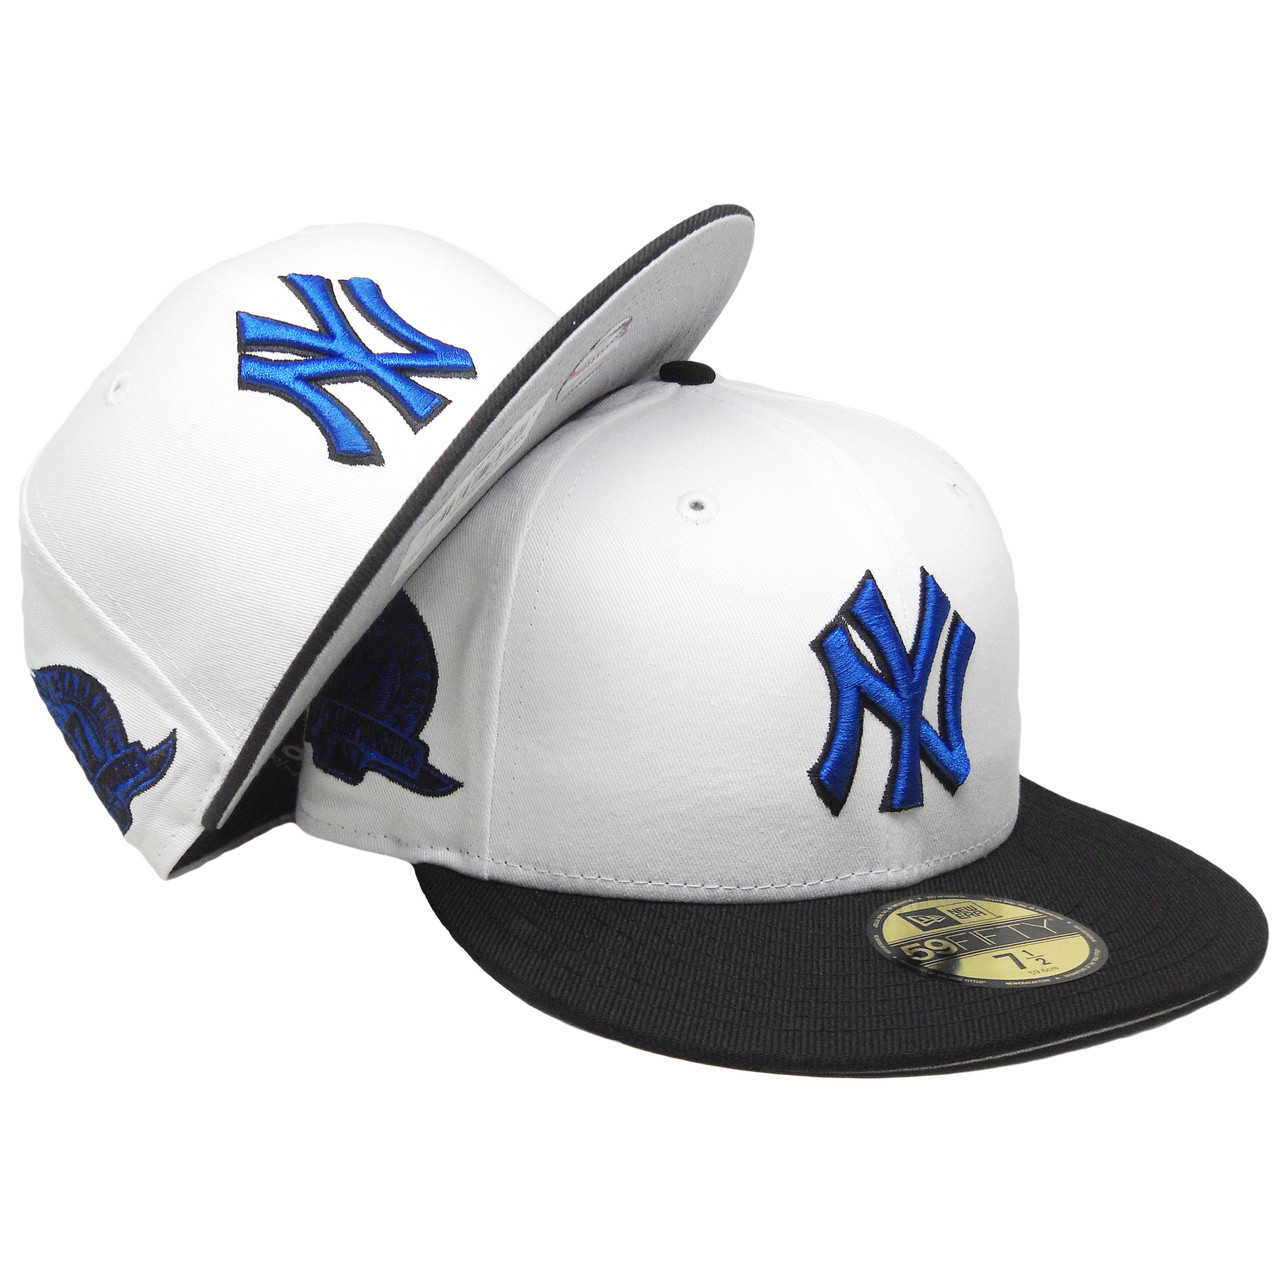 ce0c206d232 New York Yankees New Era Custom 59Fifty Fitted - White, Black, Royal -  ECapsUnlimited.com